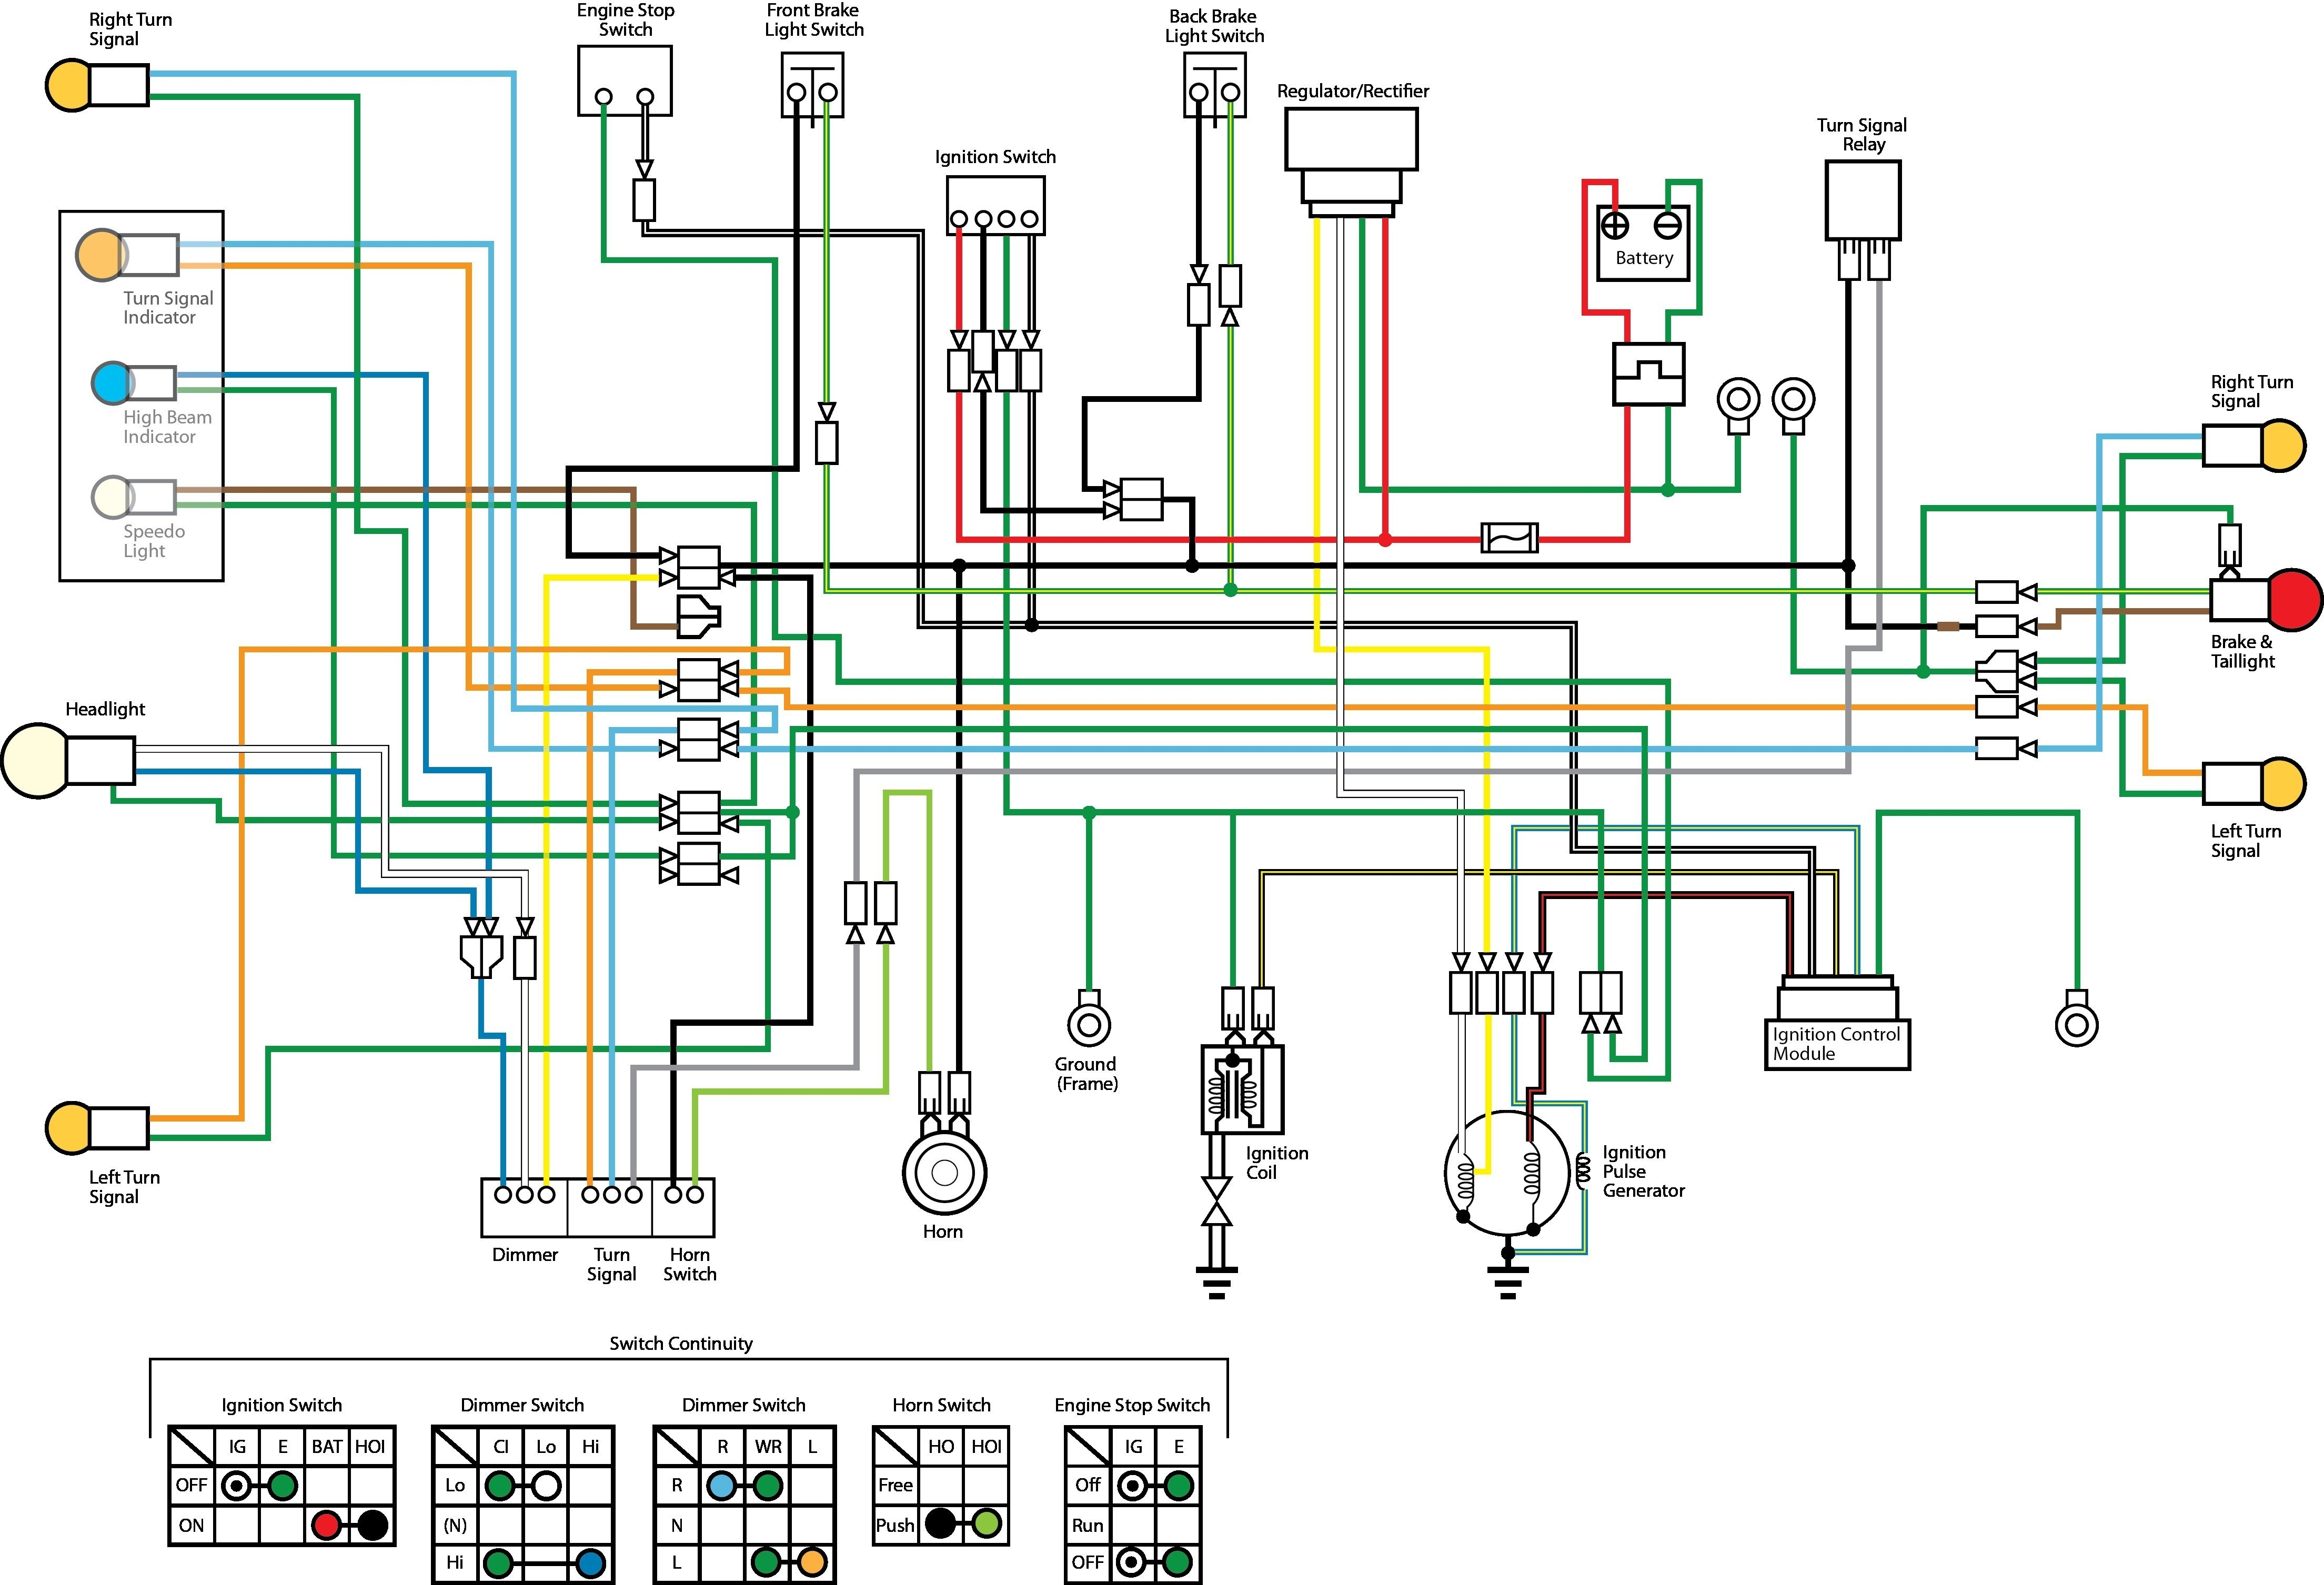 Auto Engine Diagram Wiring Diagram Brake Light Switch Refrence Universal Motorcycle Of Auto Engine Diagram